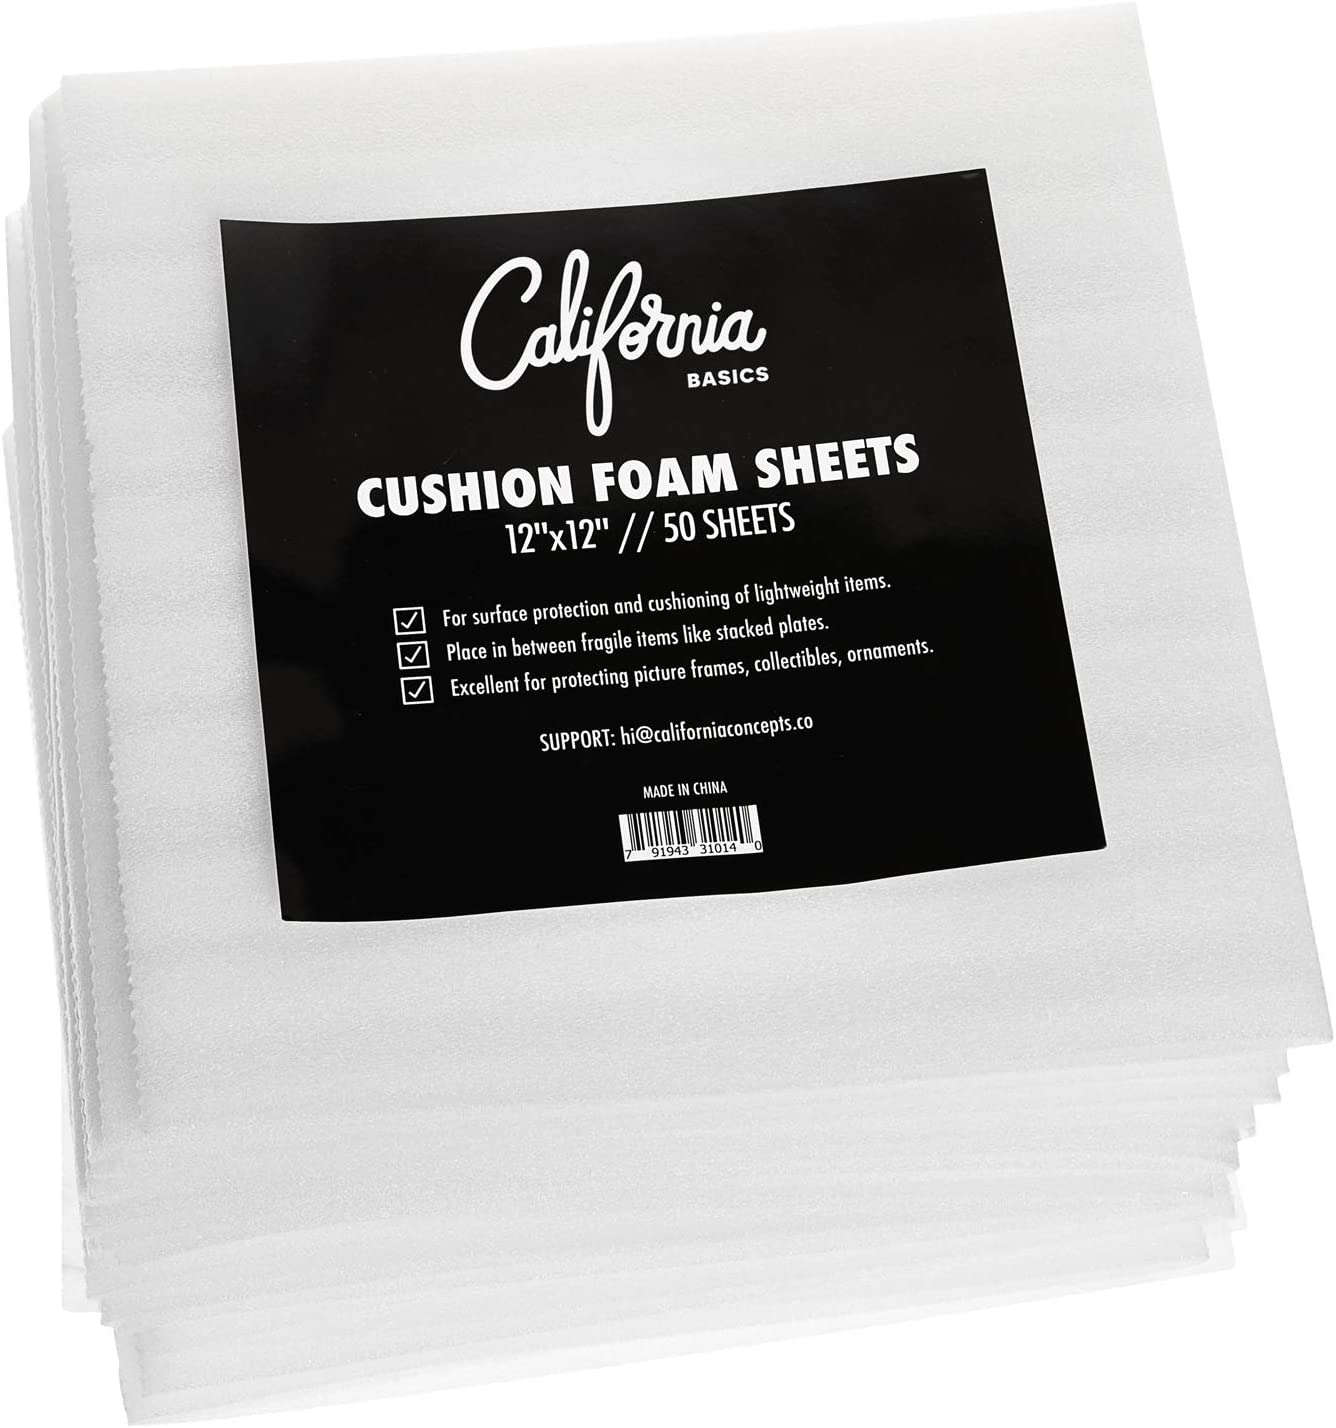 "USA Moving Supply Cushion Foam Sheets 12"" x 12"" (50 Count), Packing Foam Supplies for Moving, Safely Wrap Dishes, Glasses & Furniture Legs: Toys & Games"